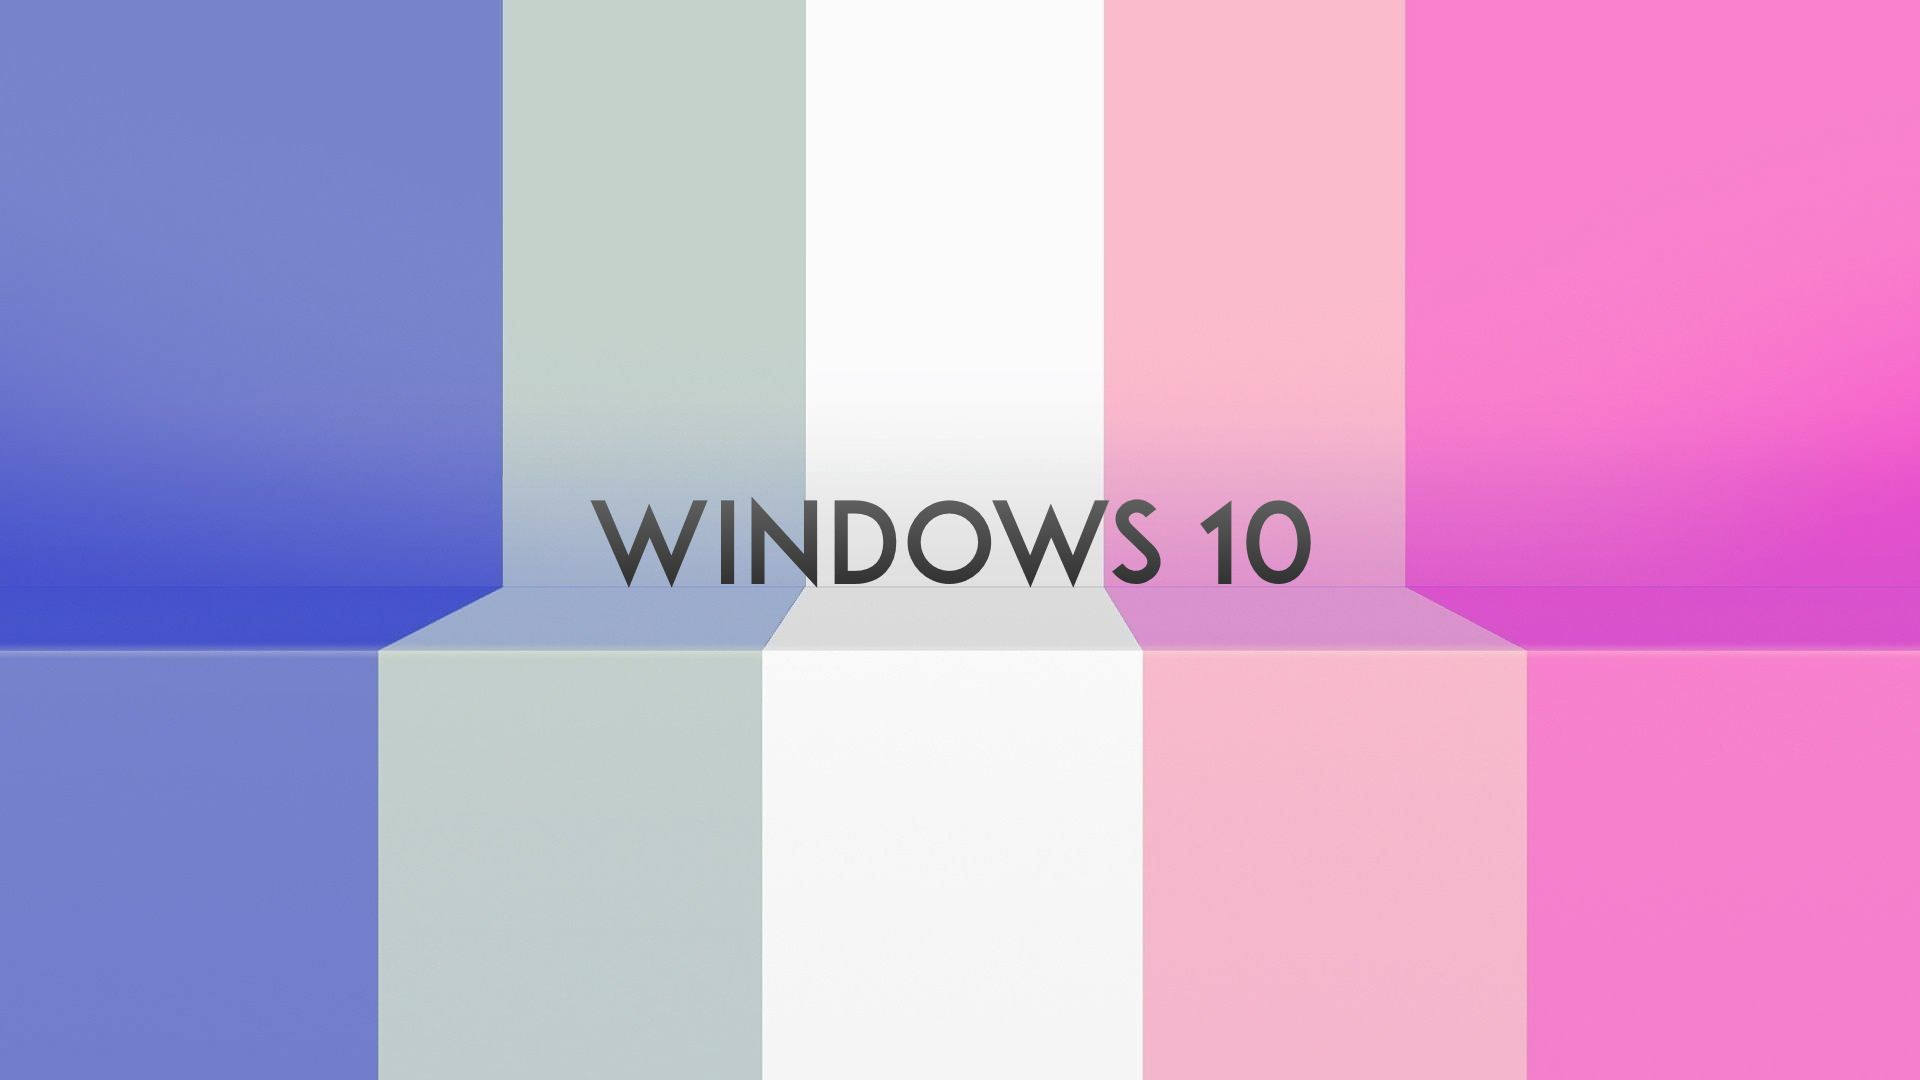 Colorful Windows 10 Wallpaper